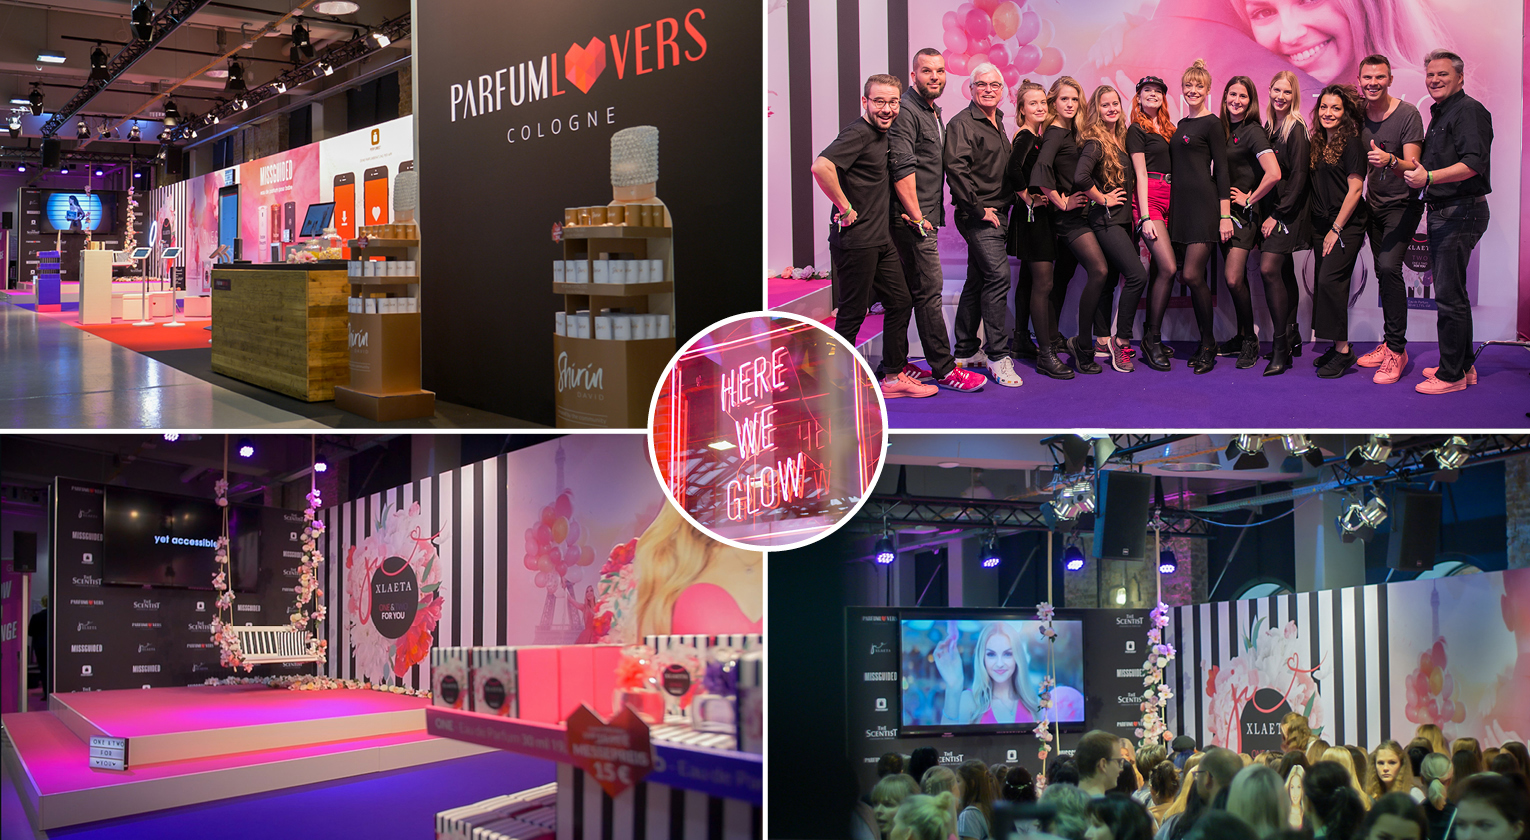 Messestand der Parfumlovers